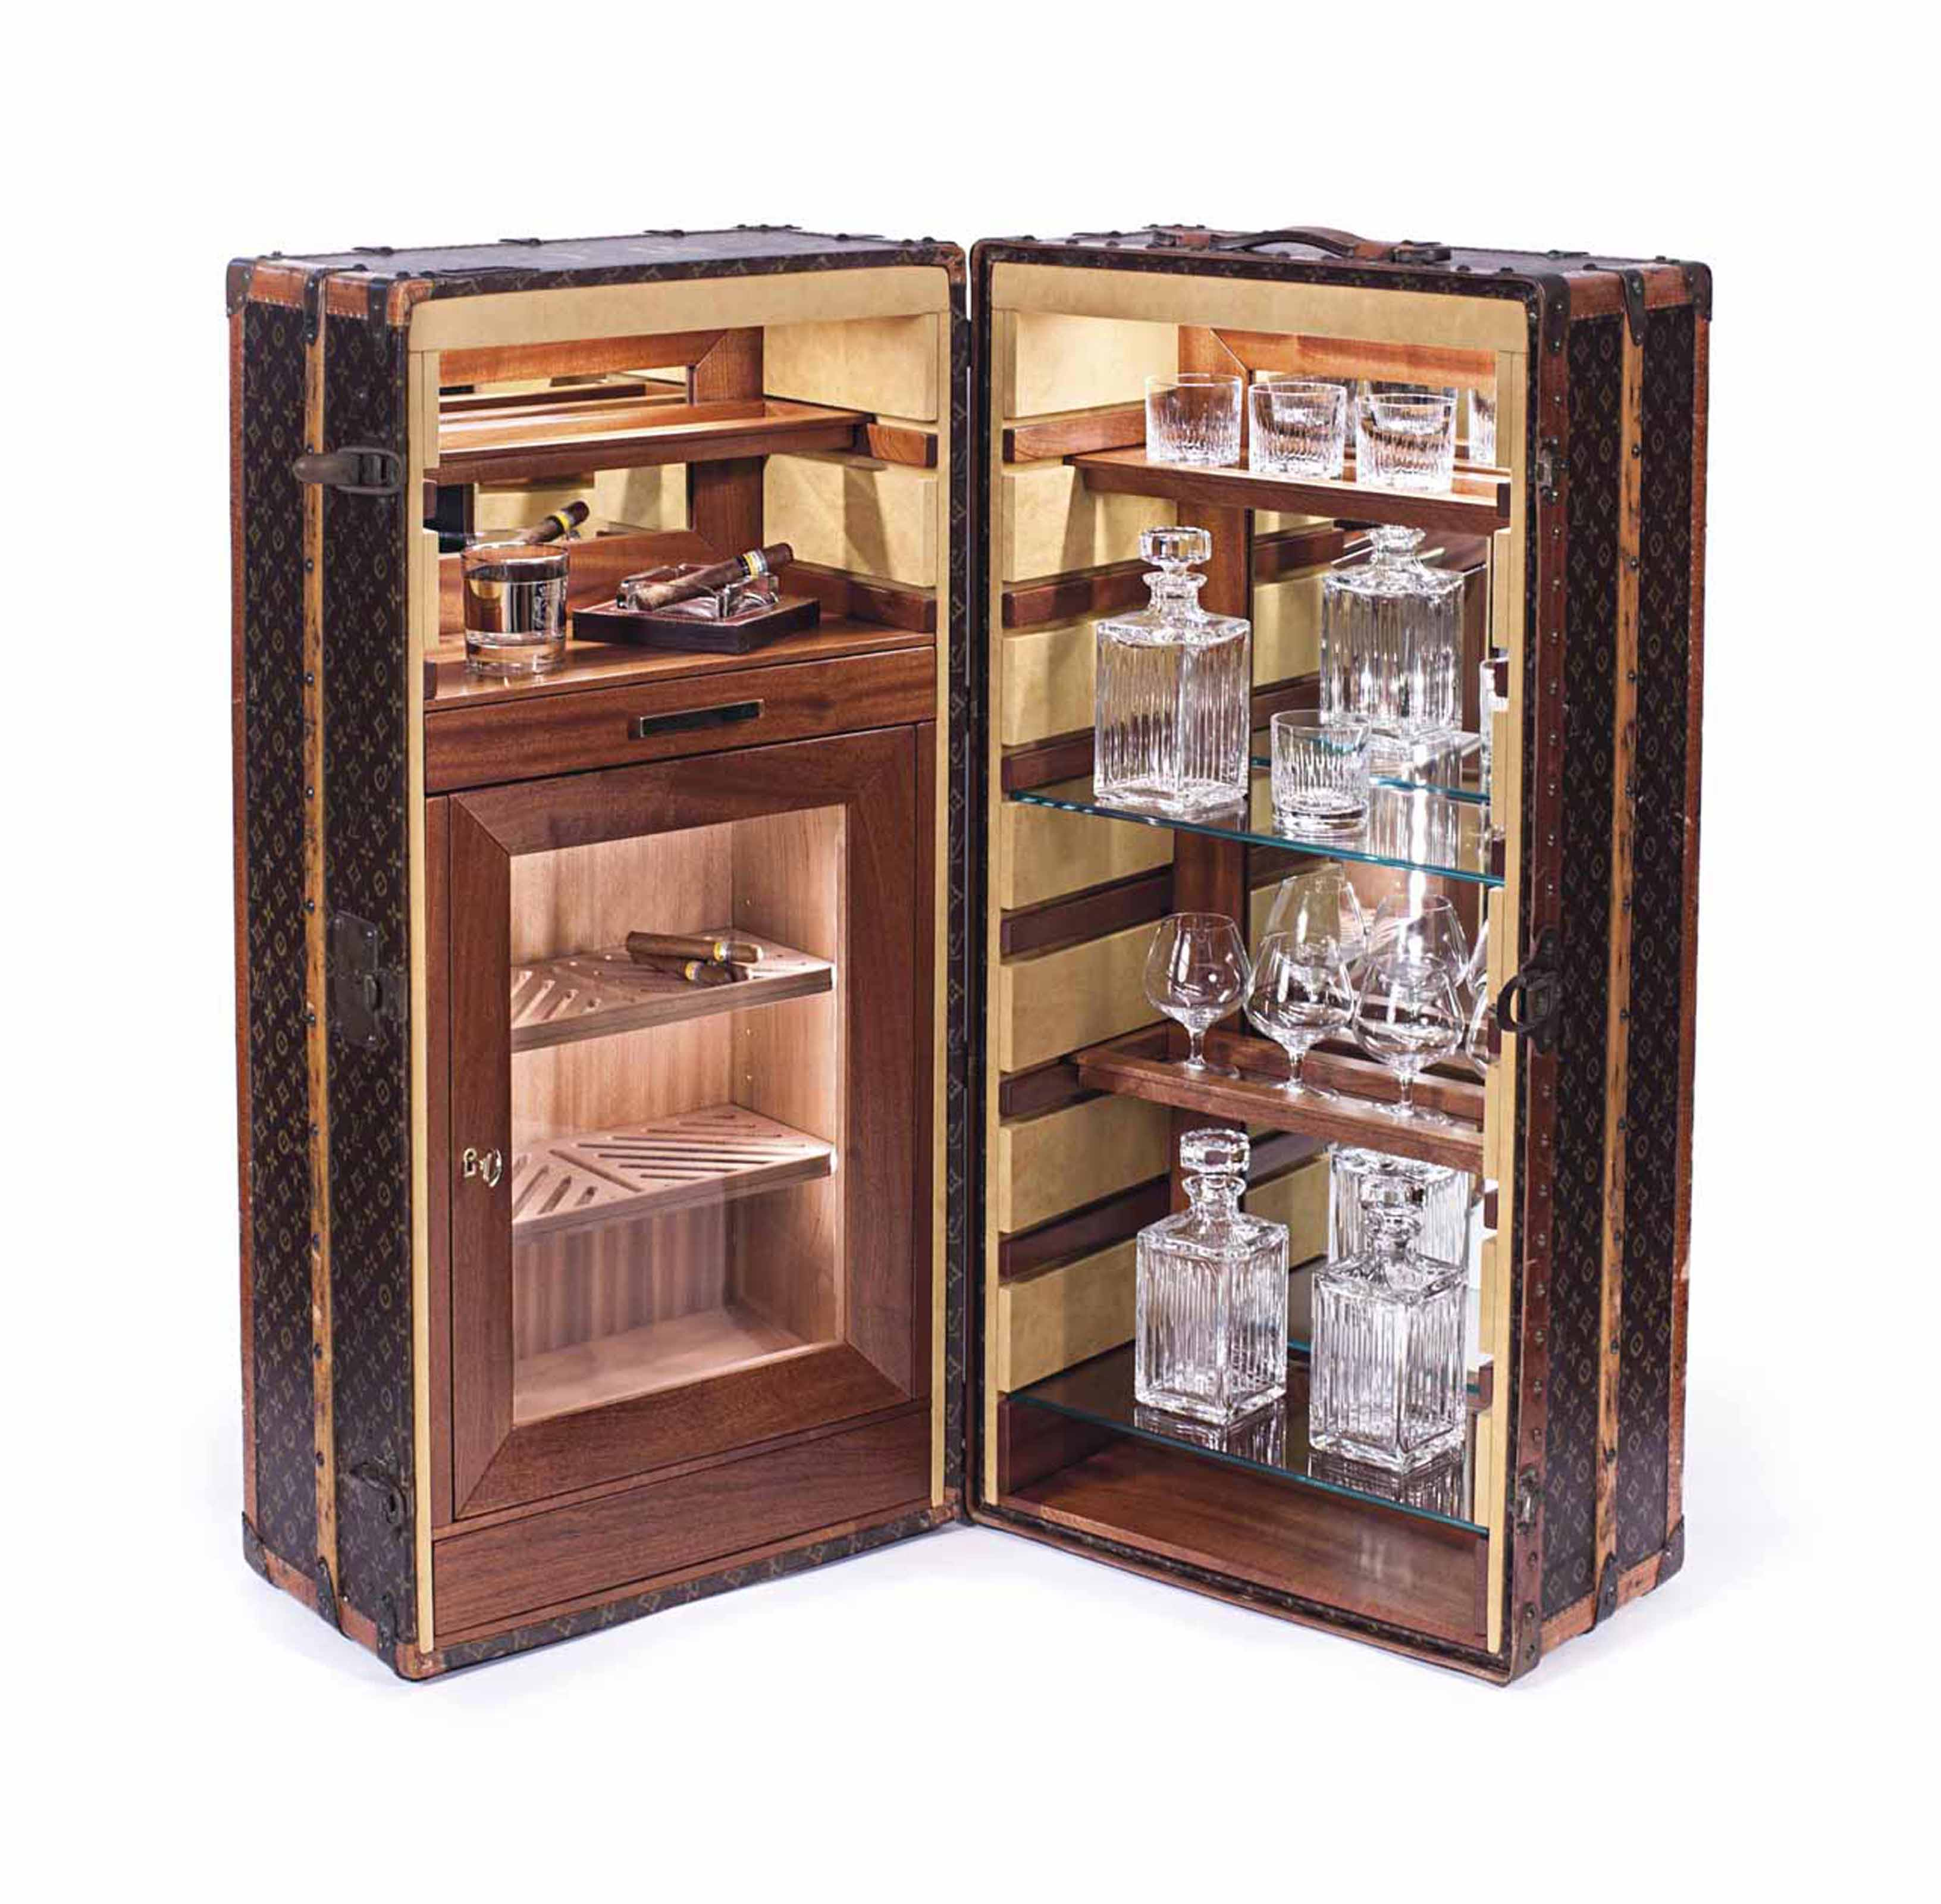 LOUIS VUITTON. A VERY FINE WARDROBE TRUNK WITH HUMIDOR AND DISPLAY SHELVES, CUSTOMIZED BY BERNARDINI LUXURY VINTAGE